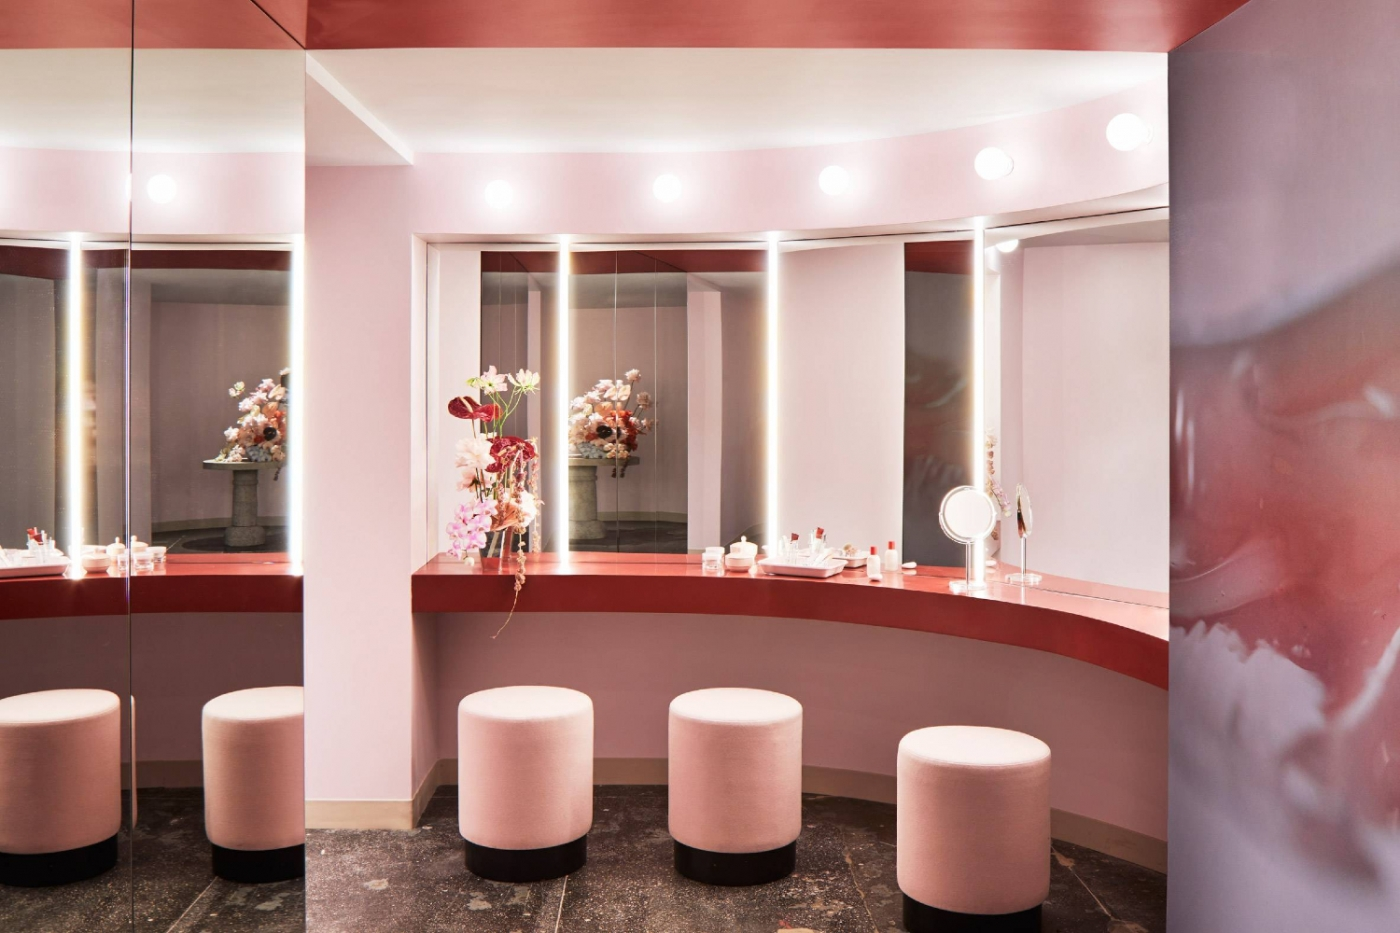 walk-in closets The Most Feminine and Opulent Walk-In Closets For A Luxury Home freature 1400x933